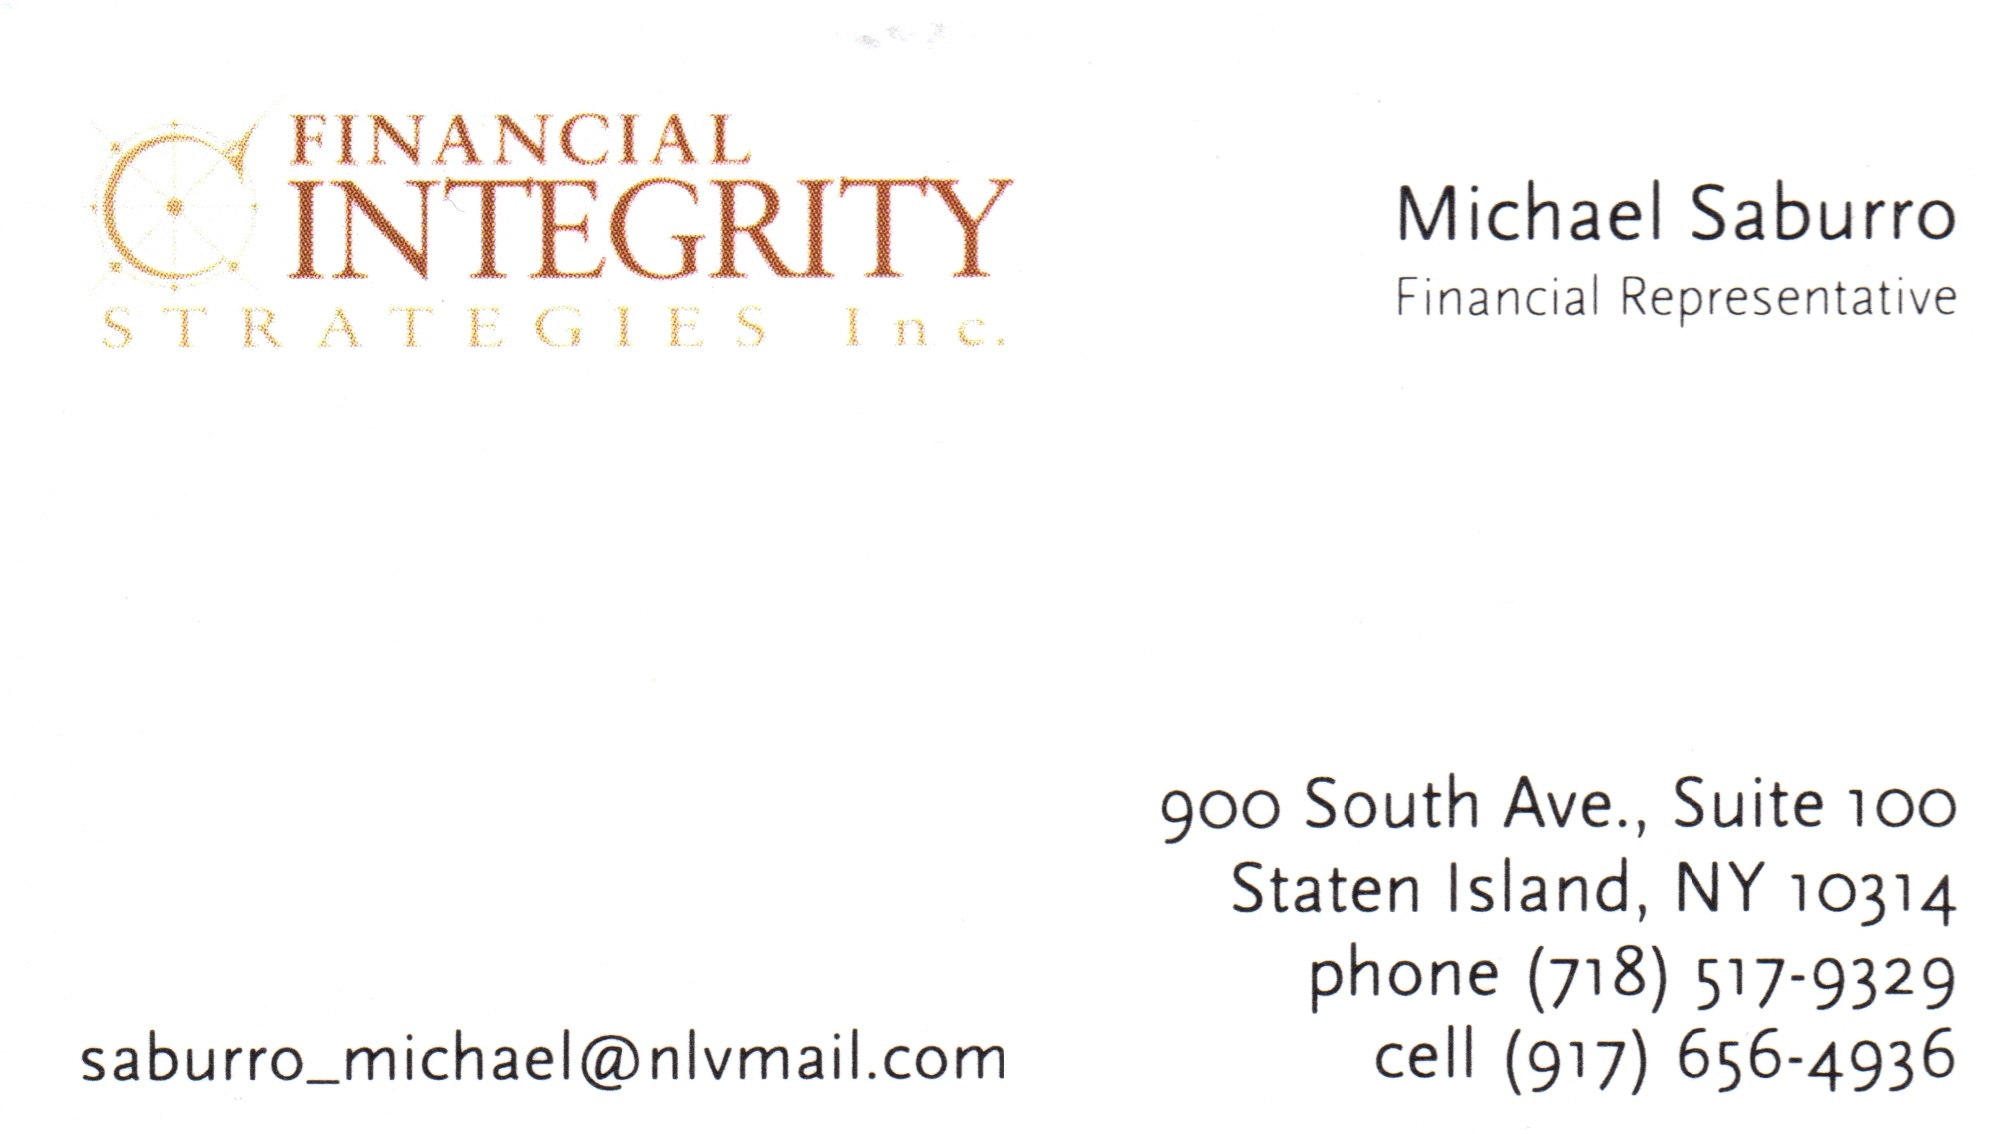 Michael Saburro Financial Rep Staten Island Financial Integrity Strategies Inc.j